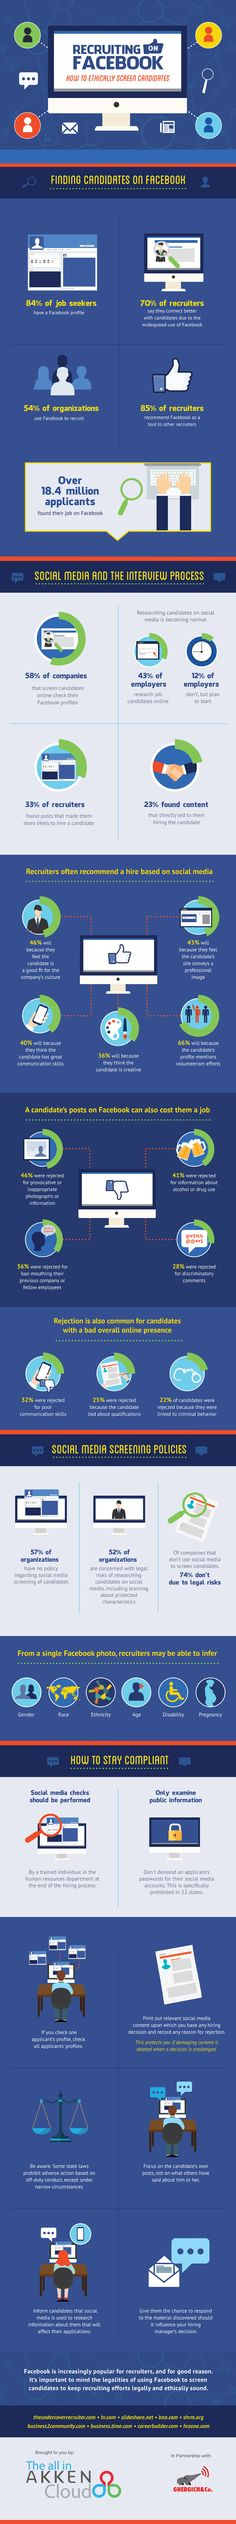 Recruiting On Facebook: How To Ethically Screen Candidates - #infographic #socialmedia